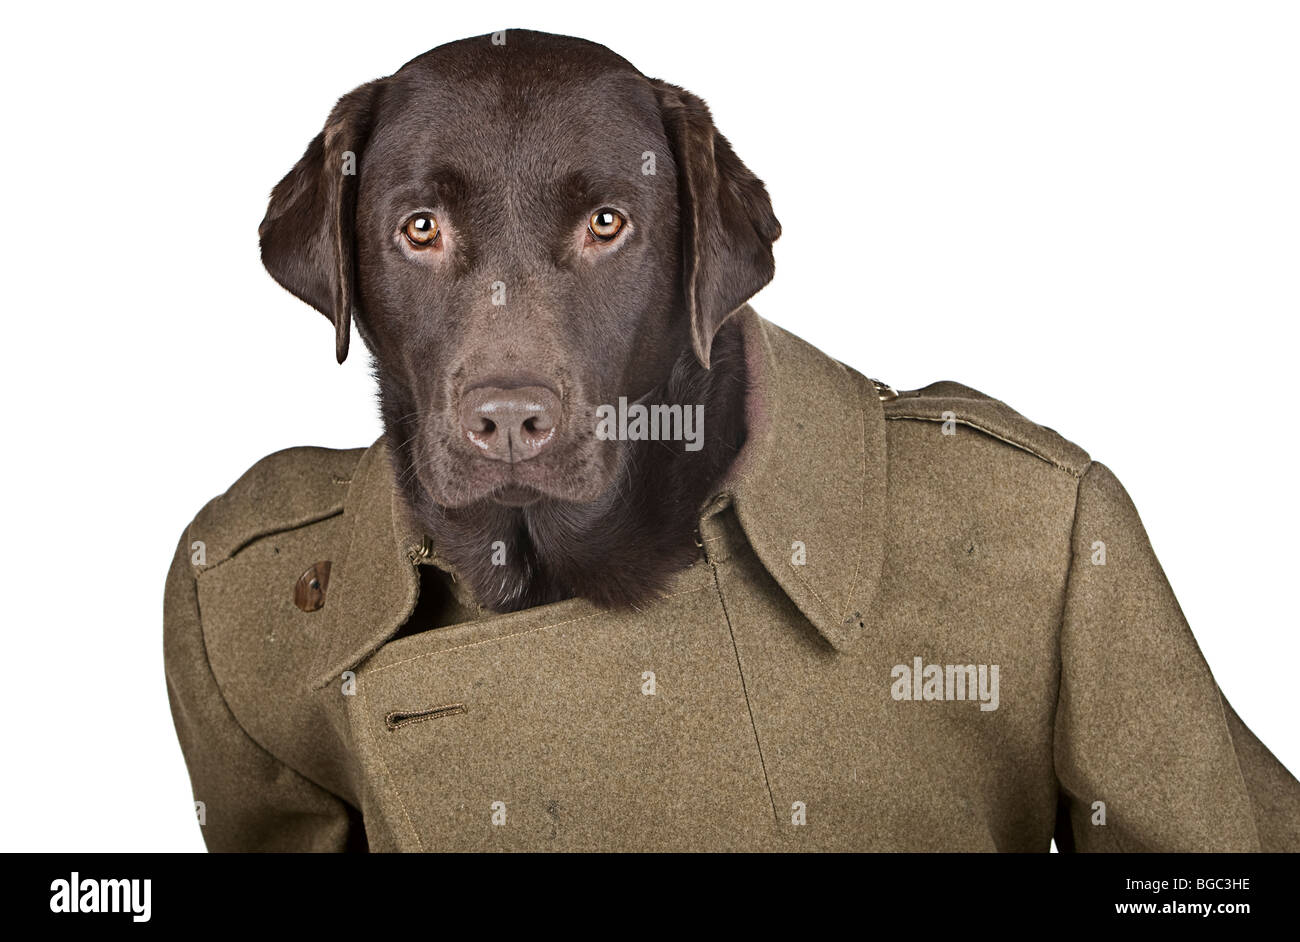 Good Boo Army Adorable Dog - humour-shot-of-a-chocolate-labrador-dressed-in-historic-army-coat-BGC3HE  Snapshot_43848  .jpg